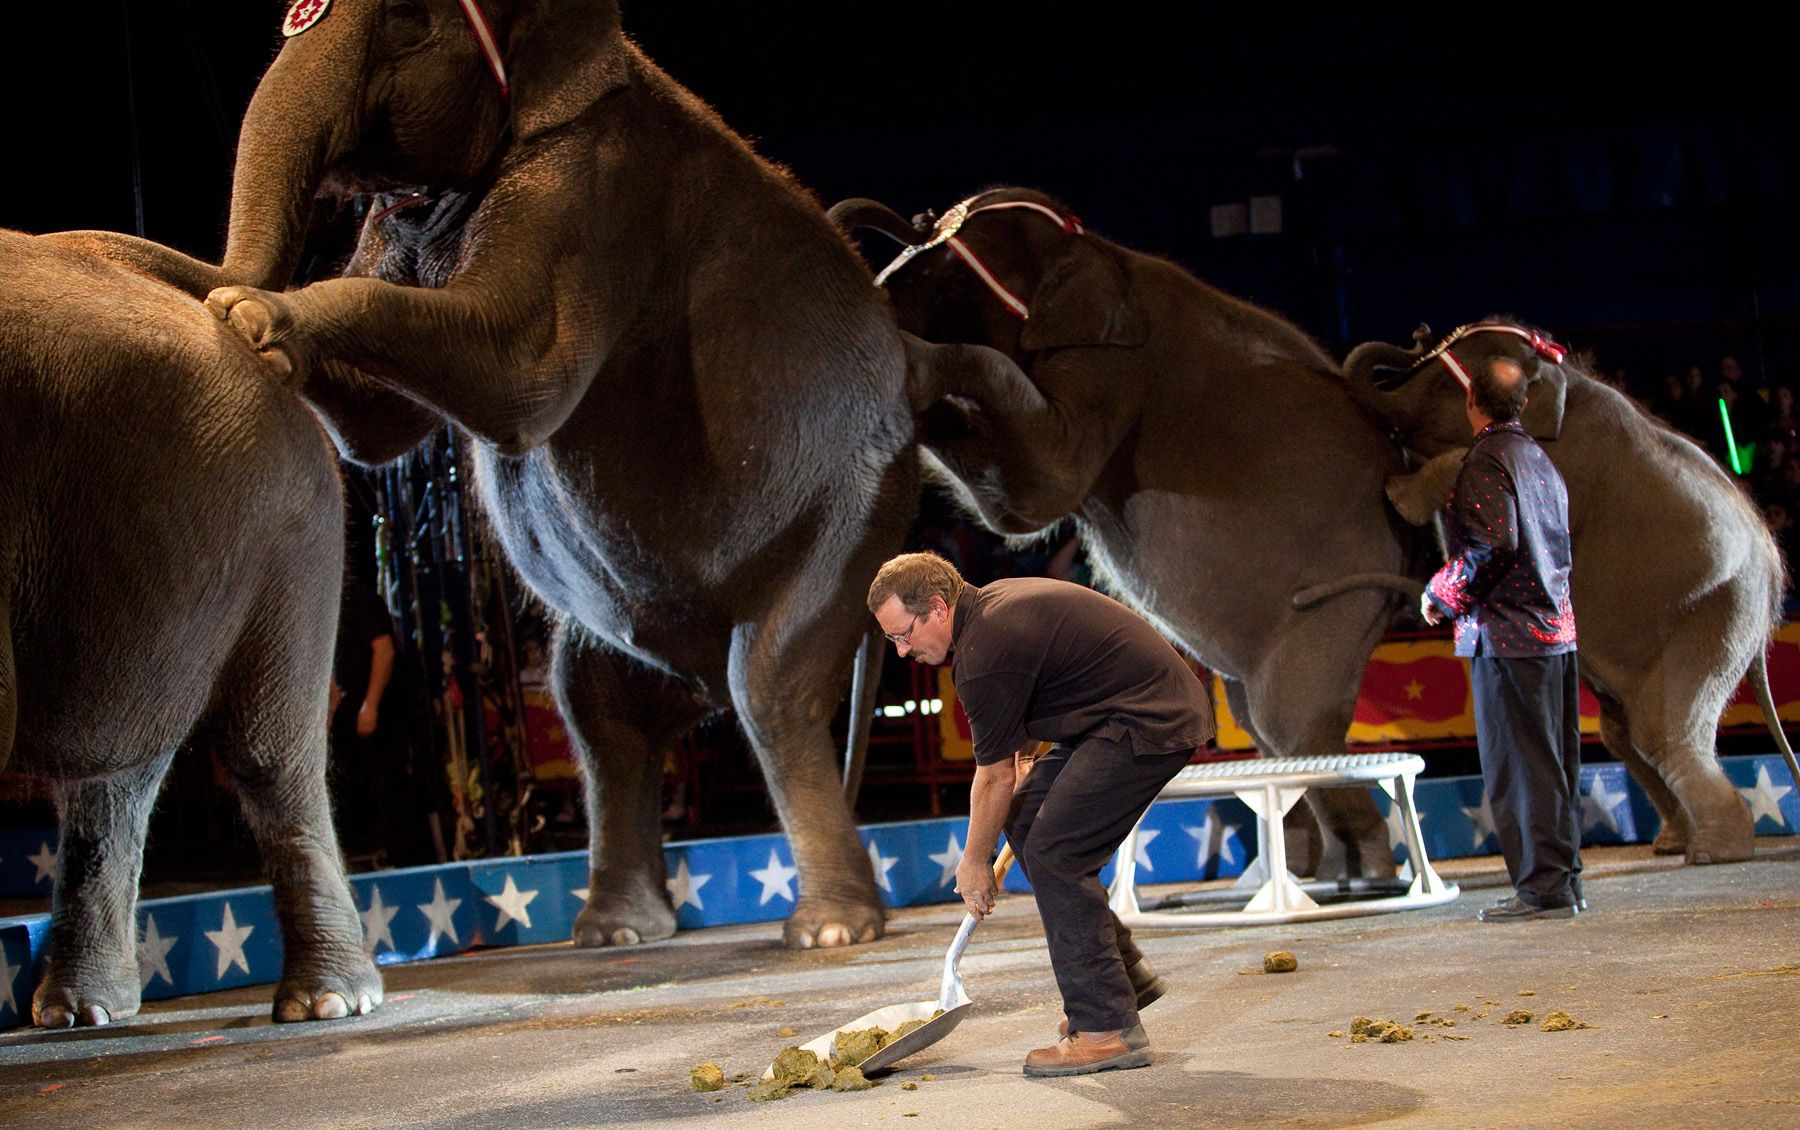 Danny McRoberts of Augusta, Georgia, performs one of his tasks as an animal handler during a Cole Brother Circus of the Stars show in Myrtle Beach, South Carolina March 31, 2013. Traveling circuses such as the Cole Brothers Circus of the Stars, complete with it's traveling big top tent, set up their tent city in smaller markets all along the East Coast of the United States as they aim to bring the circus to rural areas. The Cole Brothers Circus, now in its 129th edition, travels to 100 cities in 20-25 states and stages 250 shows a year.   REUTERS/Randall Hill